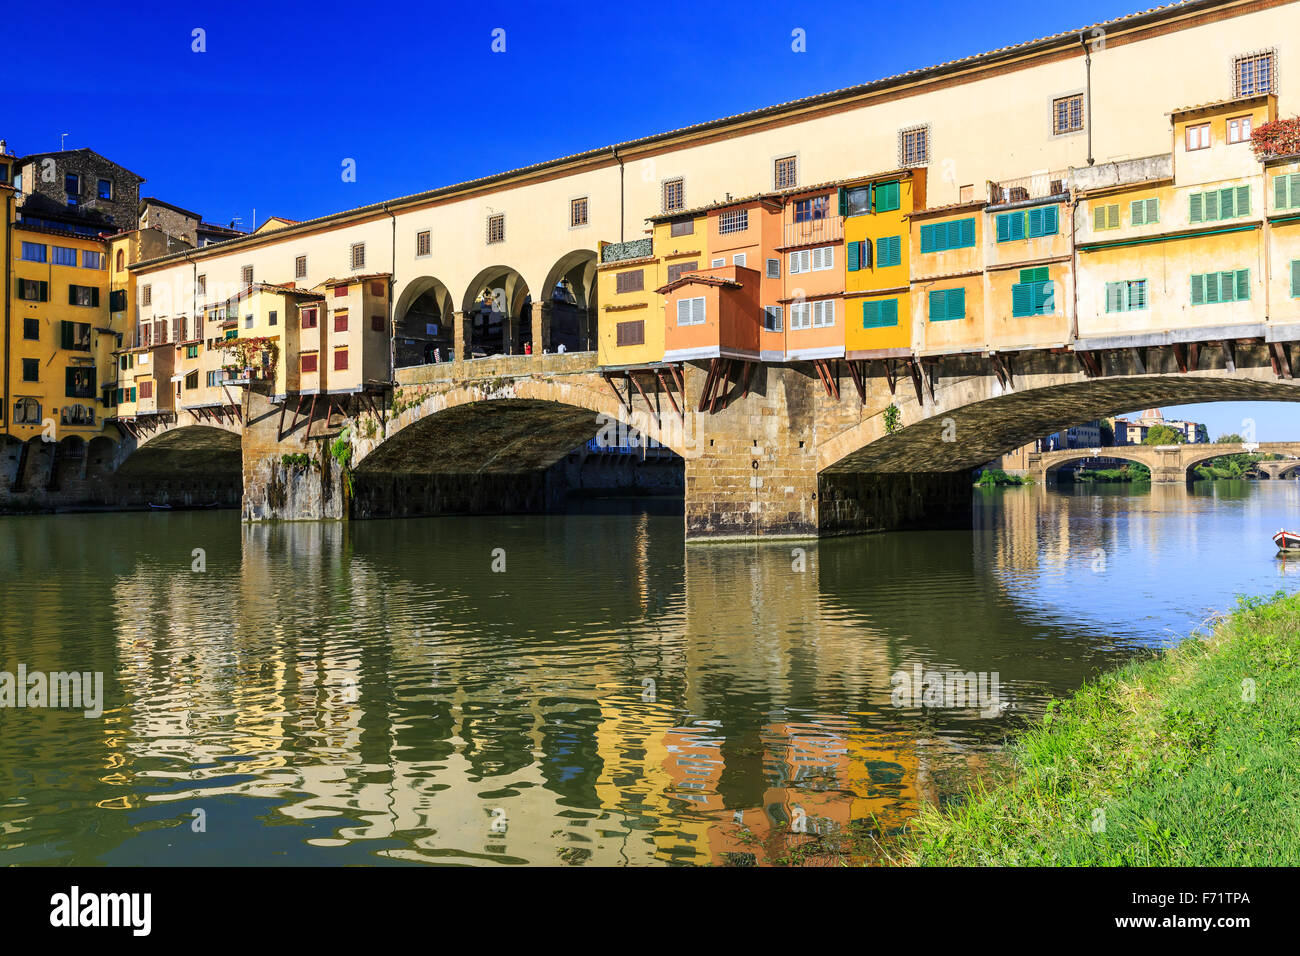 Ponte Vecchio over Arno river in Florence, Italy - Stock Image